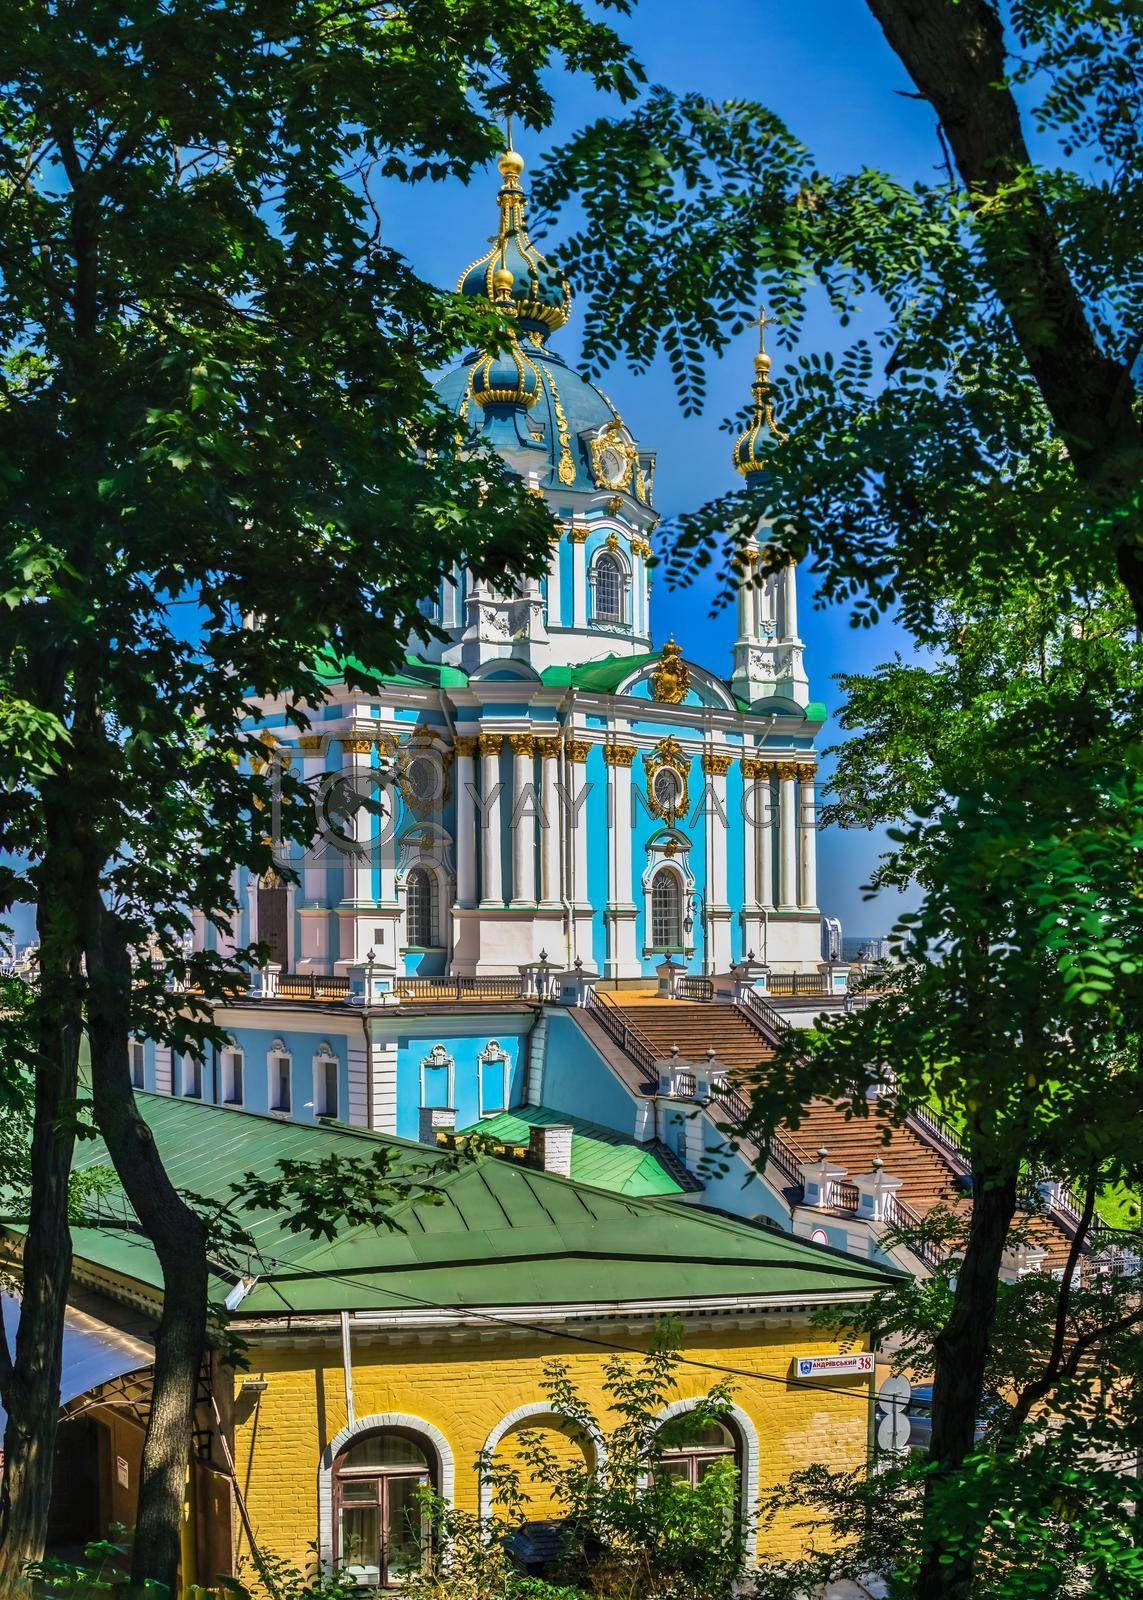 Kyiv, Ukraine 07.11.2020. The St. Andrew Church and The Andriyivskyy Descent in Kyiv, Ukraine, on a sunny summer day